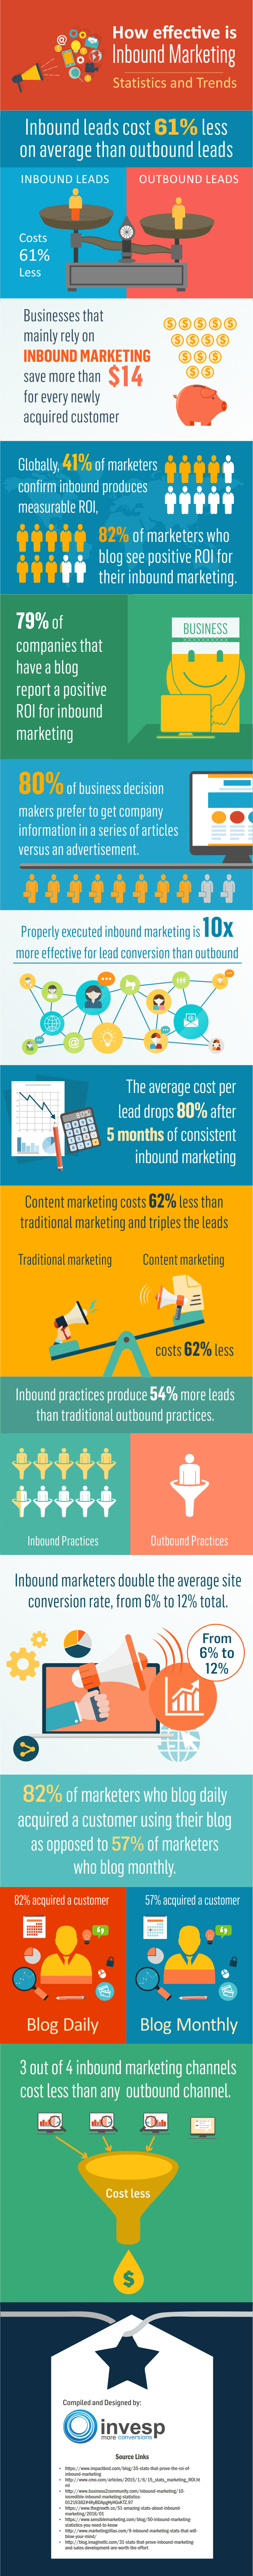 Inbound marketing - efektivnost